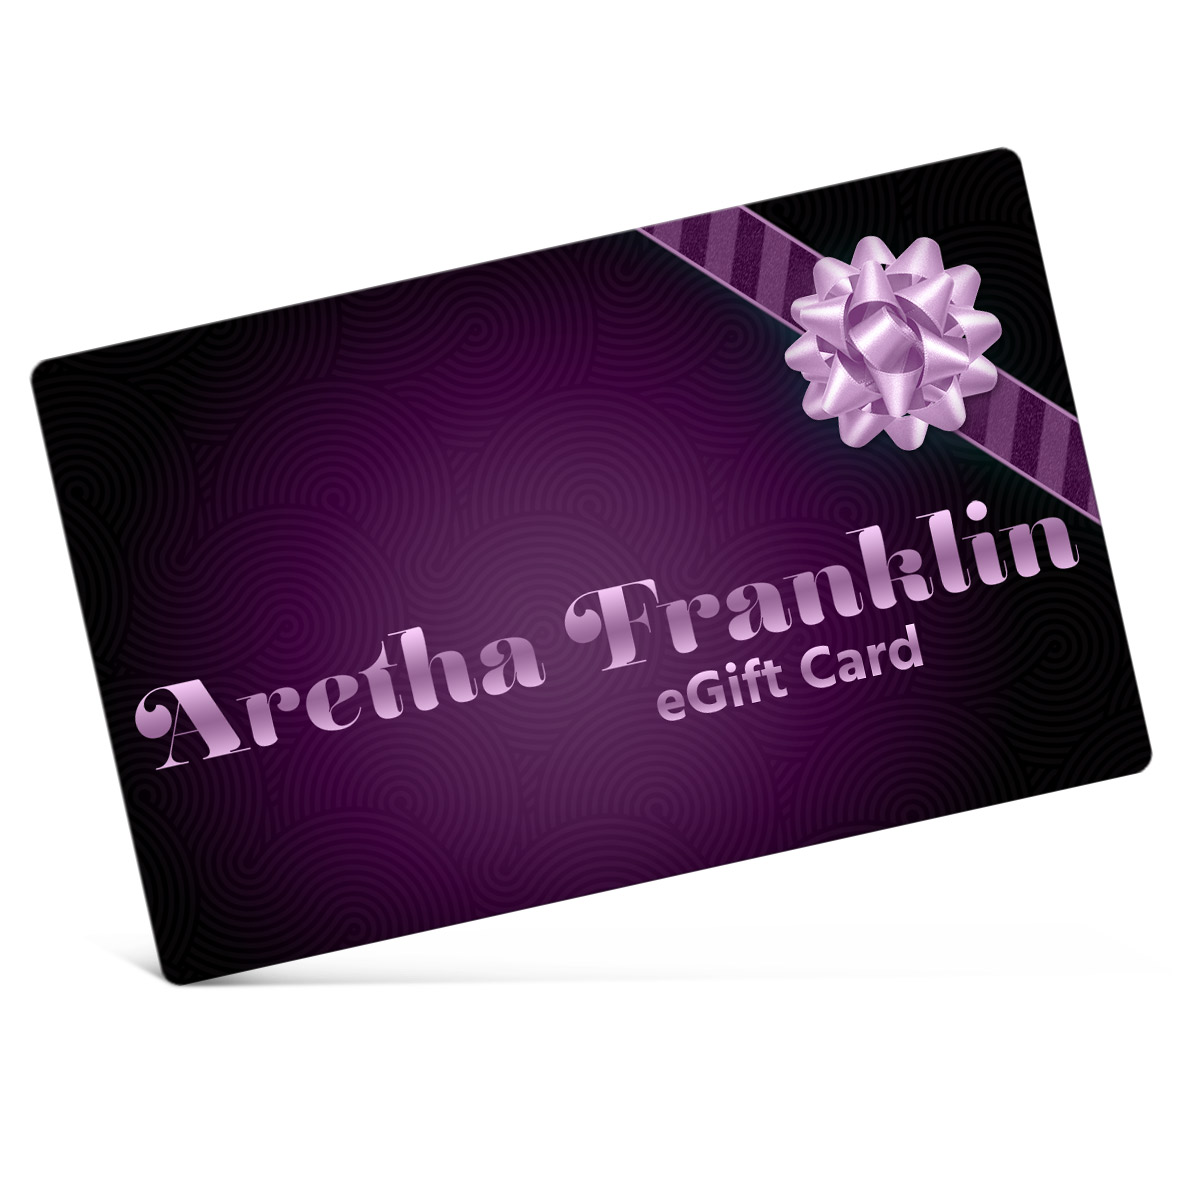 Aretha Franklin Electronic Gift Certificate